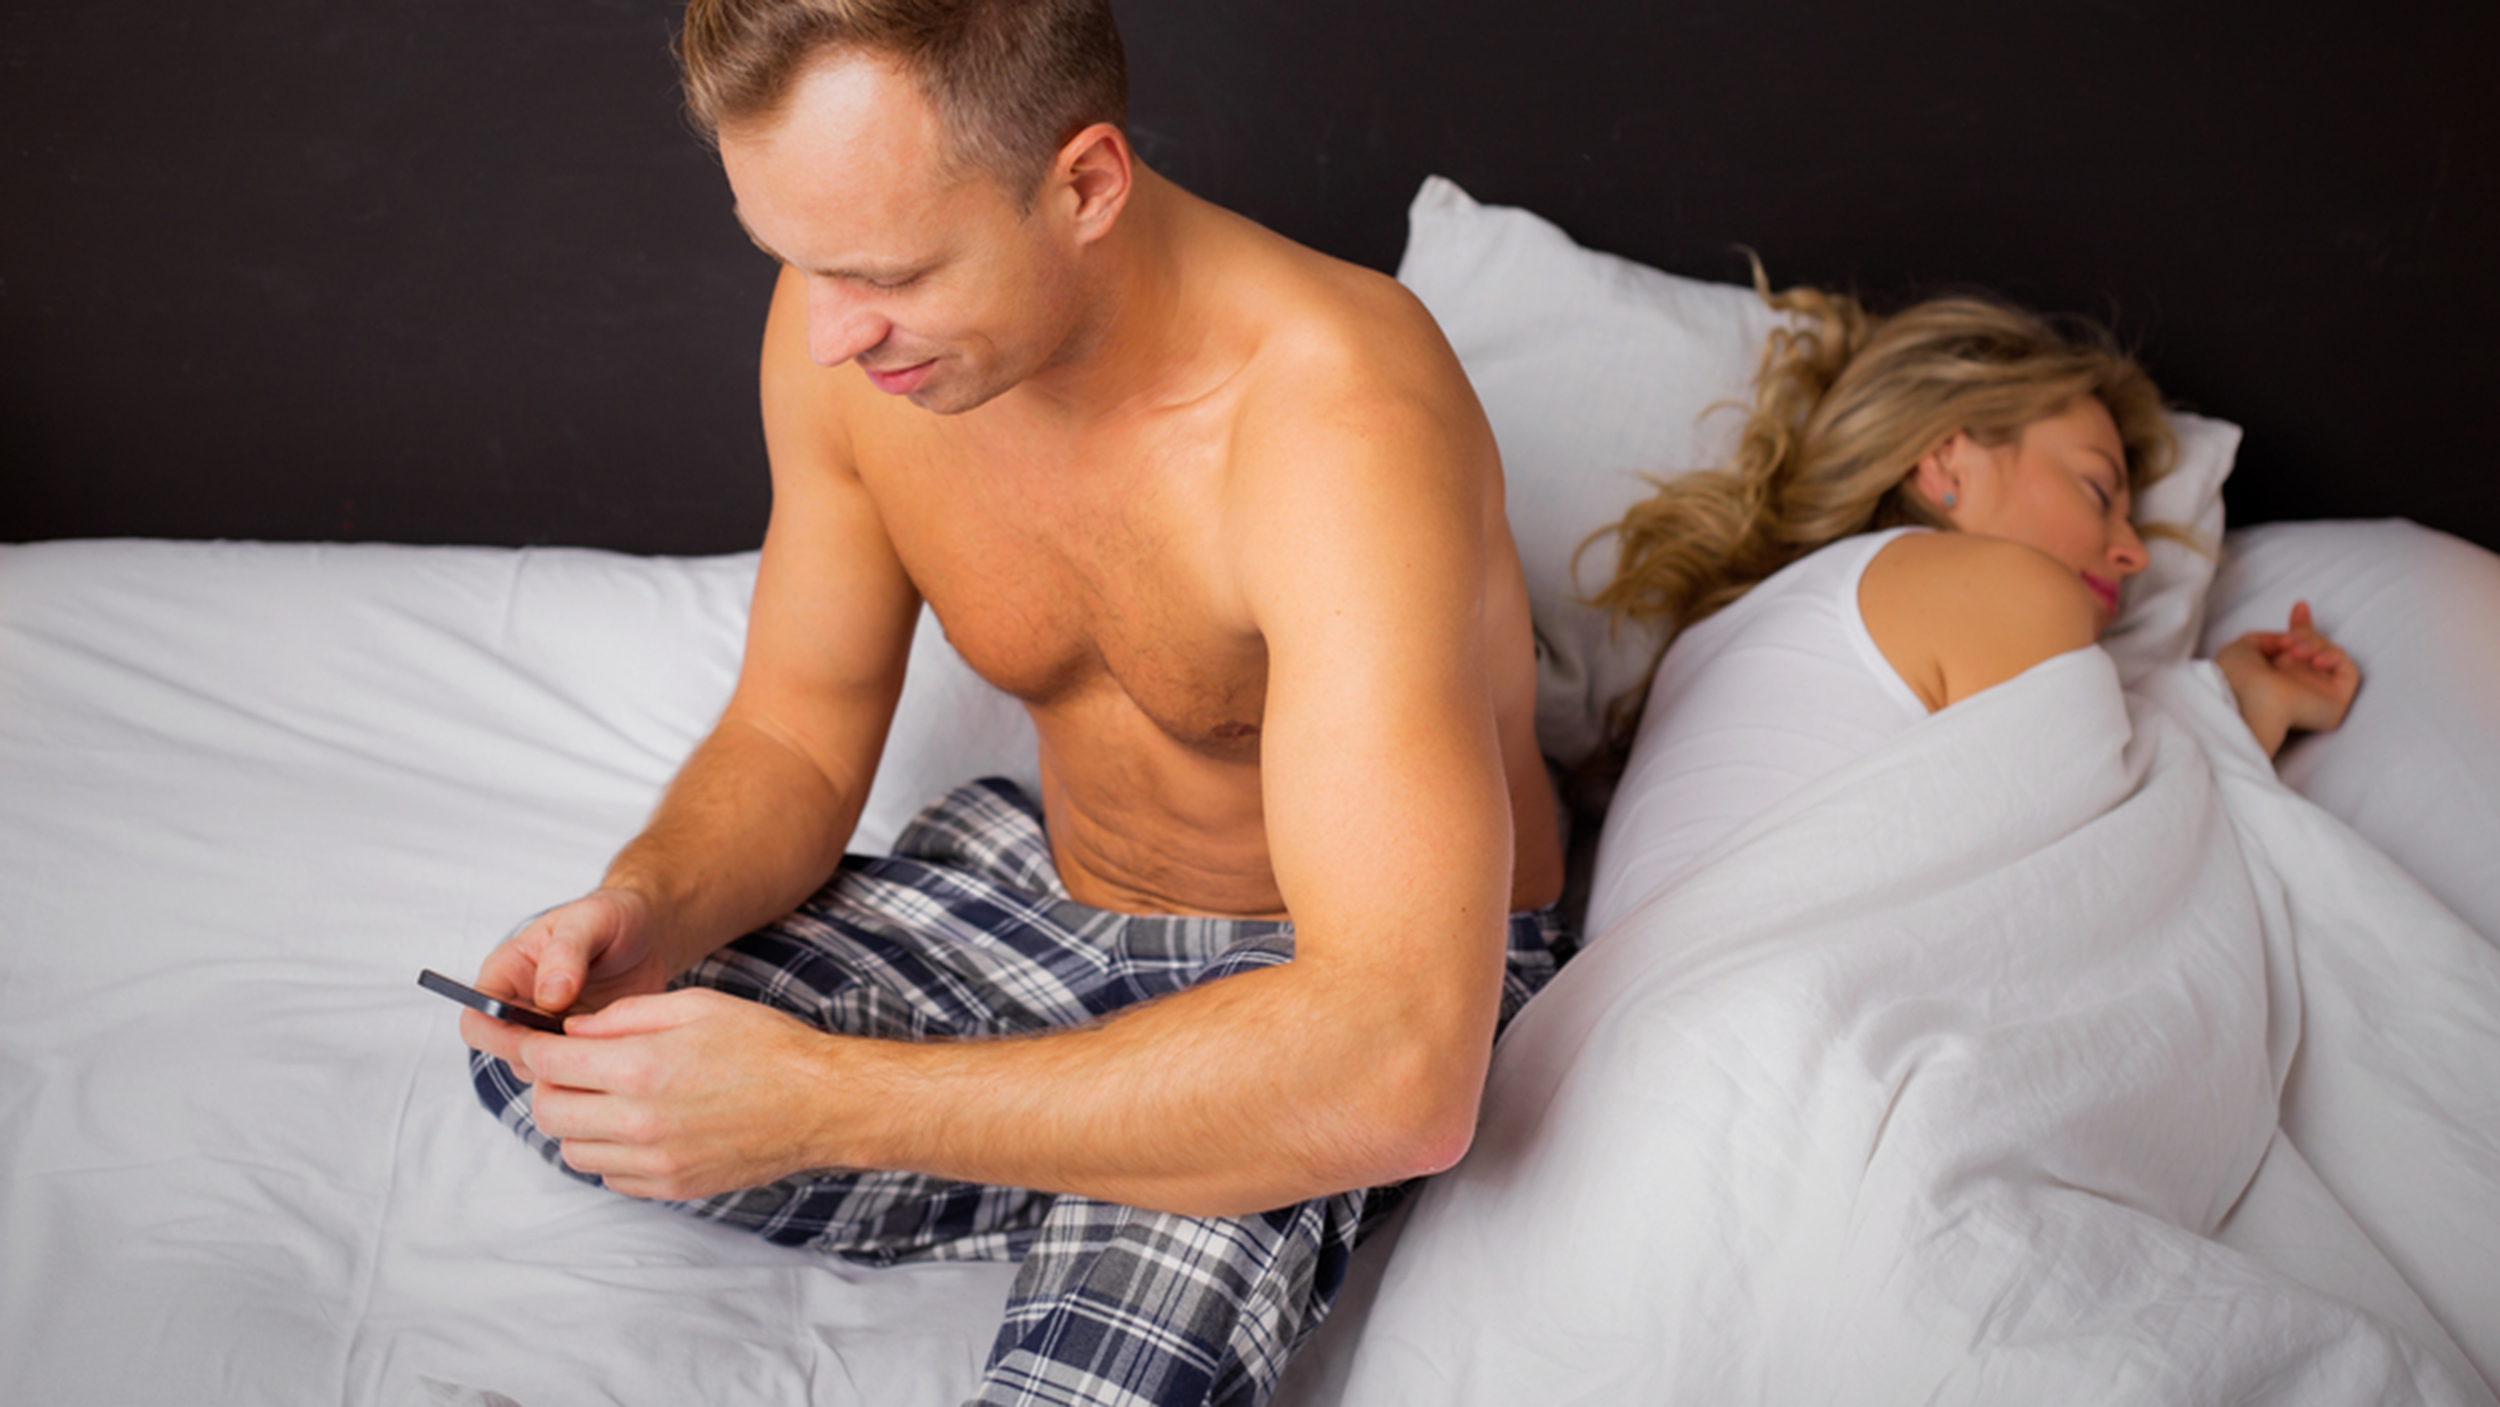 Why do cheaters get angry when caught